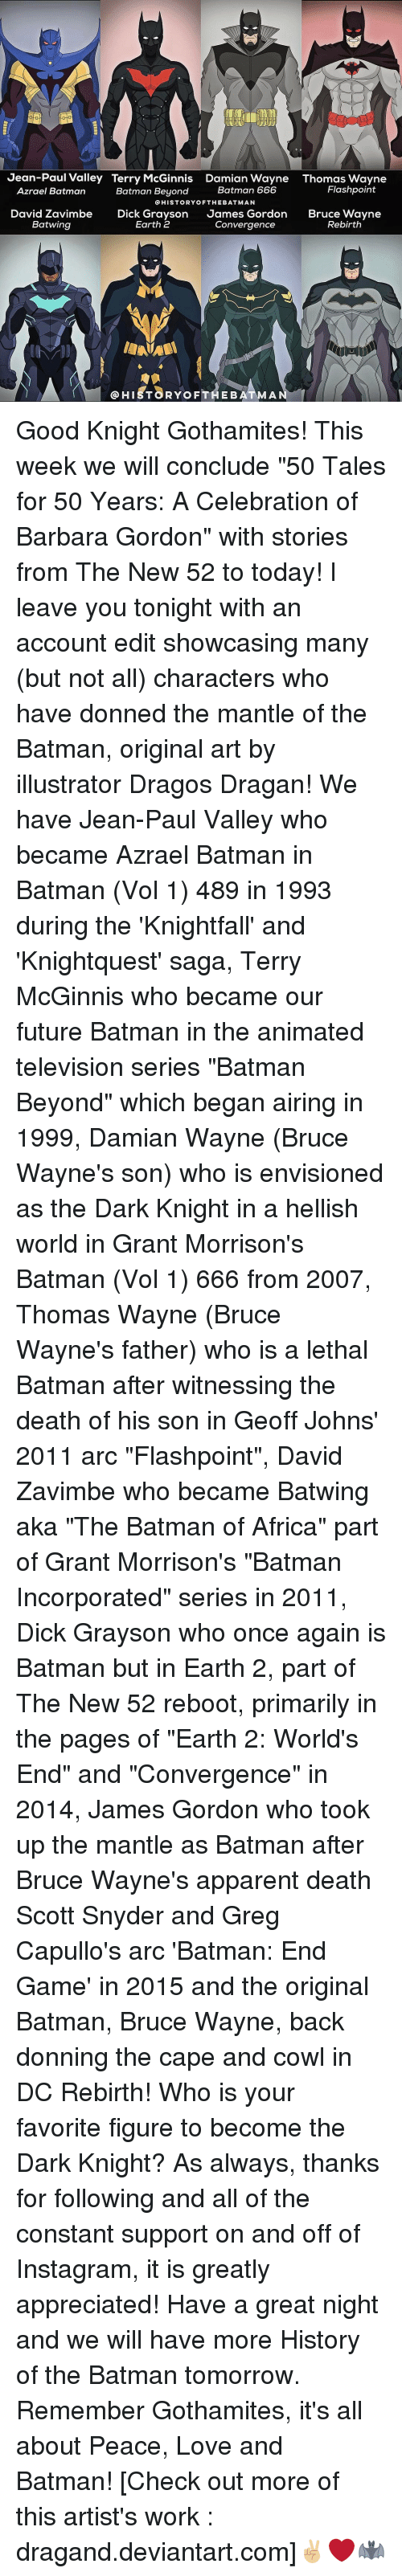 """Memes, Deviantart, and The Dark Knight: Jean-Paul Valley Terry McGinnis Damian Wayne Thomas Wayne  Flashpoint  Batman 666  Azrael Batman  Batman Beyond  HISTORY OF THE BATMAN  David Zavimbe  Dick Grayson  James Gordon  Bruce Wayne  Earth 2  Batwing  Convergence  Rebirth  HIST8RYoF THE BATMA Good Knight Gothamites! This week we will conclude """"50 Tales for 50 Years: A Celebration of Barbara Gordon"""" with stories from The New 52 to today! I leave you tonight with an account edit showcasing many (but not all) characters who have donned the mantle of the Batman, original art by illustrator Dragos Dragan! We have Jean-Paul Valley who became Azrael Batman in Batman (Vol 1) 489 in 1993 during the 'Knightfall' and 'Knightquest' saga, Terry McGinnis who became our future Batman in the animated television series """"Batman Beyond"""" which began airing in 1999, Damian Wayne (Bruce Wayne's son) who is envisioned as the Dark Knight in a hellish world in Grant Morrison's Batman (Vol 1) 666 from 2007, Thomas Wayne (Bruce Wayne's father) who is a lethal Batman after witnessing the death of his son in Geoff Johns' 2011 arc """"Flashpoint"""", David Zavimbe who became Batwing aka """"The Batman of Africa"""" part of Grant Morrison's """"Batman Incorporated"""" series in 2011, Dick Grayson who once again is Batman but in Earth 2, part of The New 52 reboot, primarily in the pages of """"Earth 2: World's End"""" and """"Convergence"""" in 2014, James Gordon who took up the mantle as Batman after Bruce Wayne's apparent death Scott Snyder and Greg Capullo's arc 'Batman: End Game' in 2015 and the original Batman, Bruce Wayne, back donning the cape and cowl in DC Rebirth! Who is your favorite figure to become the Dark Knight? As always, thanks for following and all of the constant support on and off of Instagram, it is greatly appreciated! Have a great night and we will have more History of the Batman tomorrow. Remember Gothamites, it's all about Peace, Love and Batman! [Check out more of this artist's work : dragand.deviantar"""